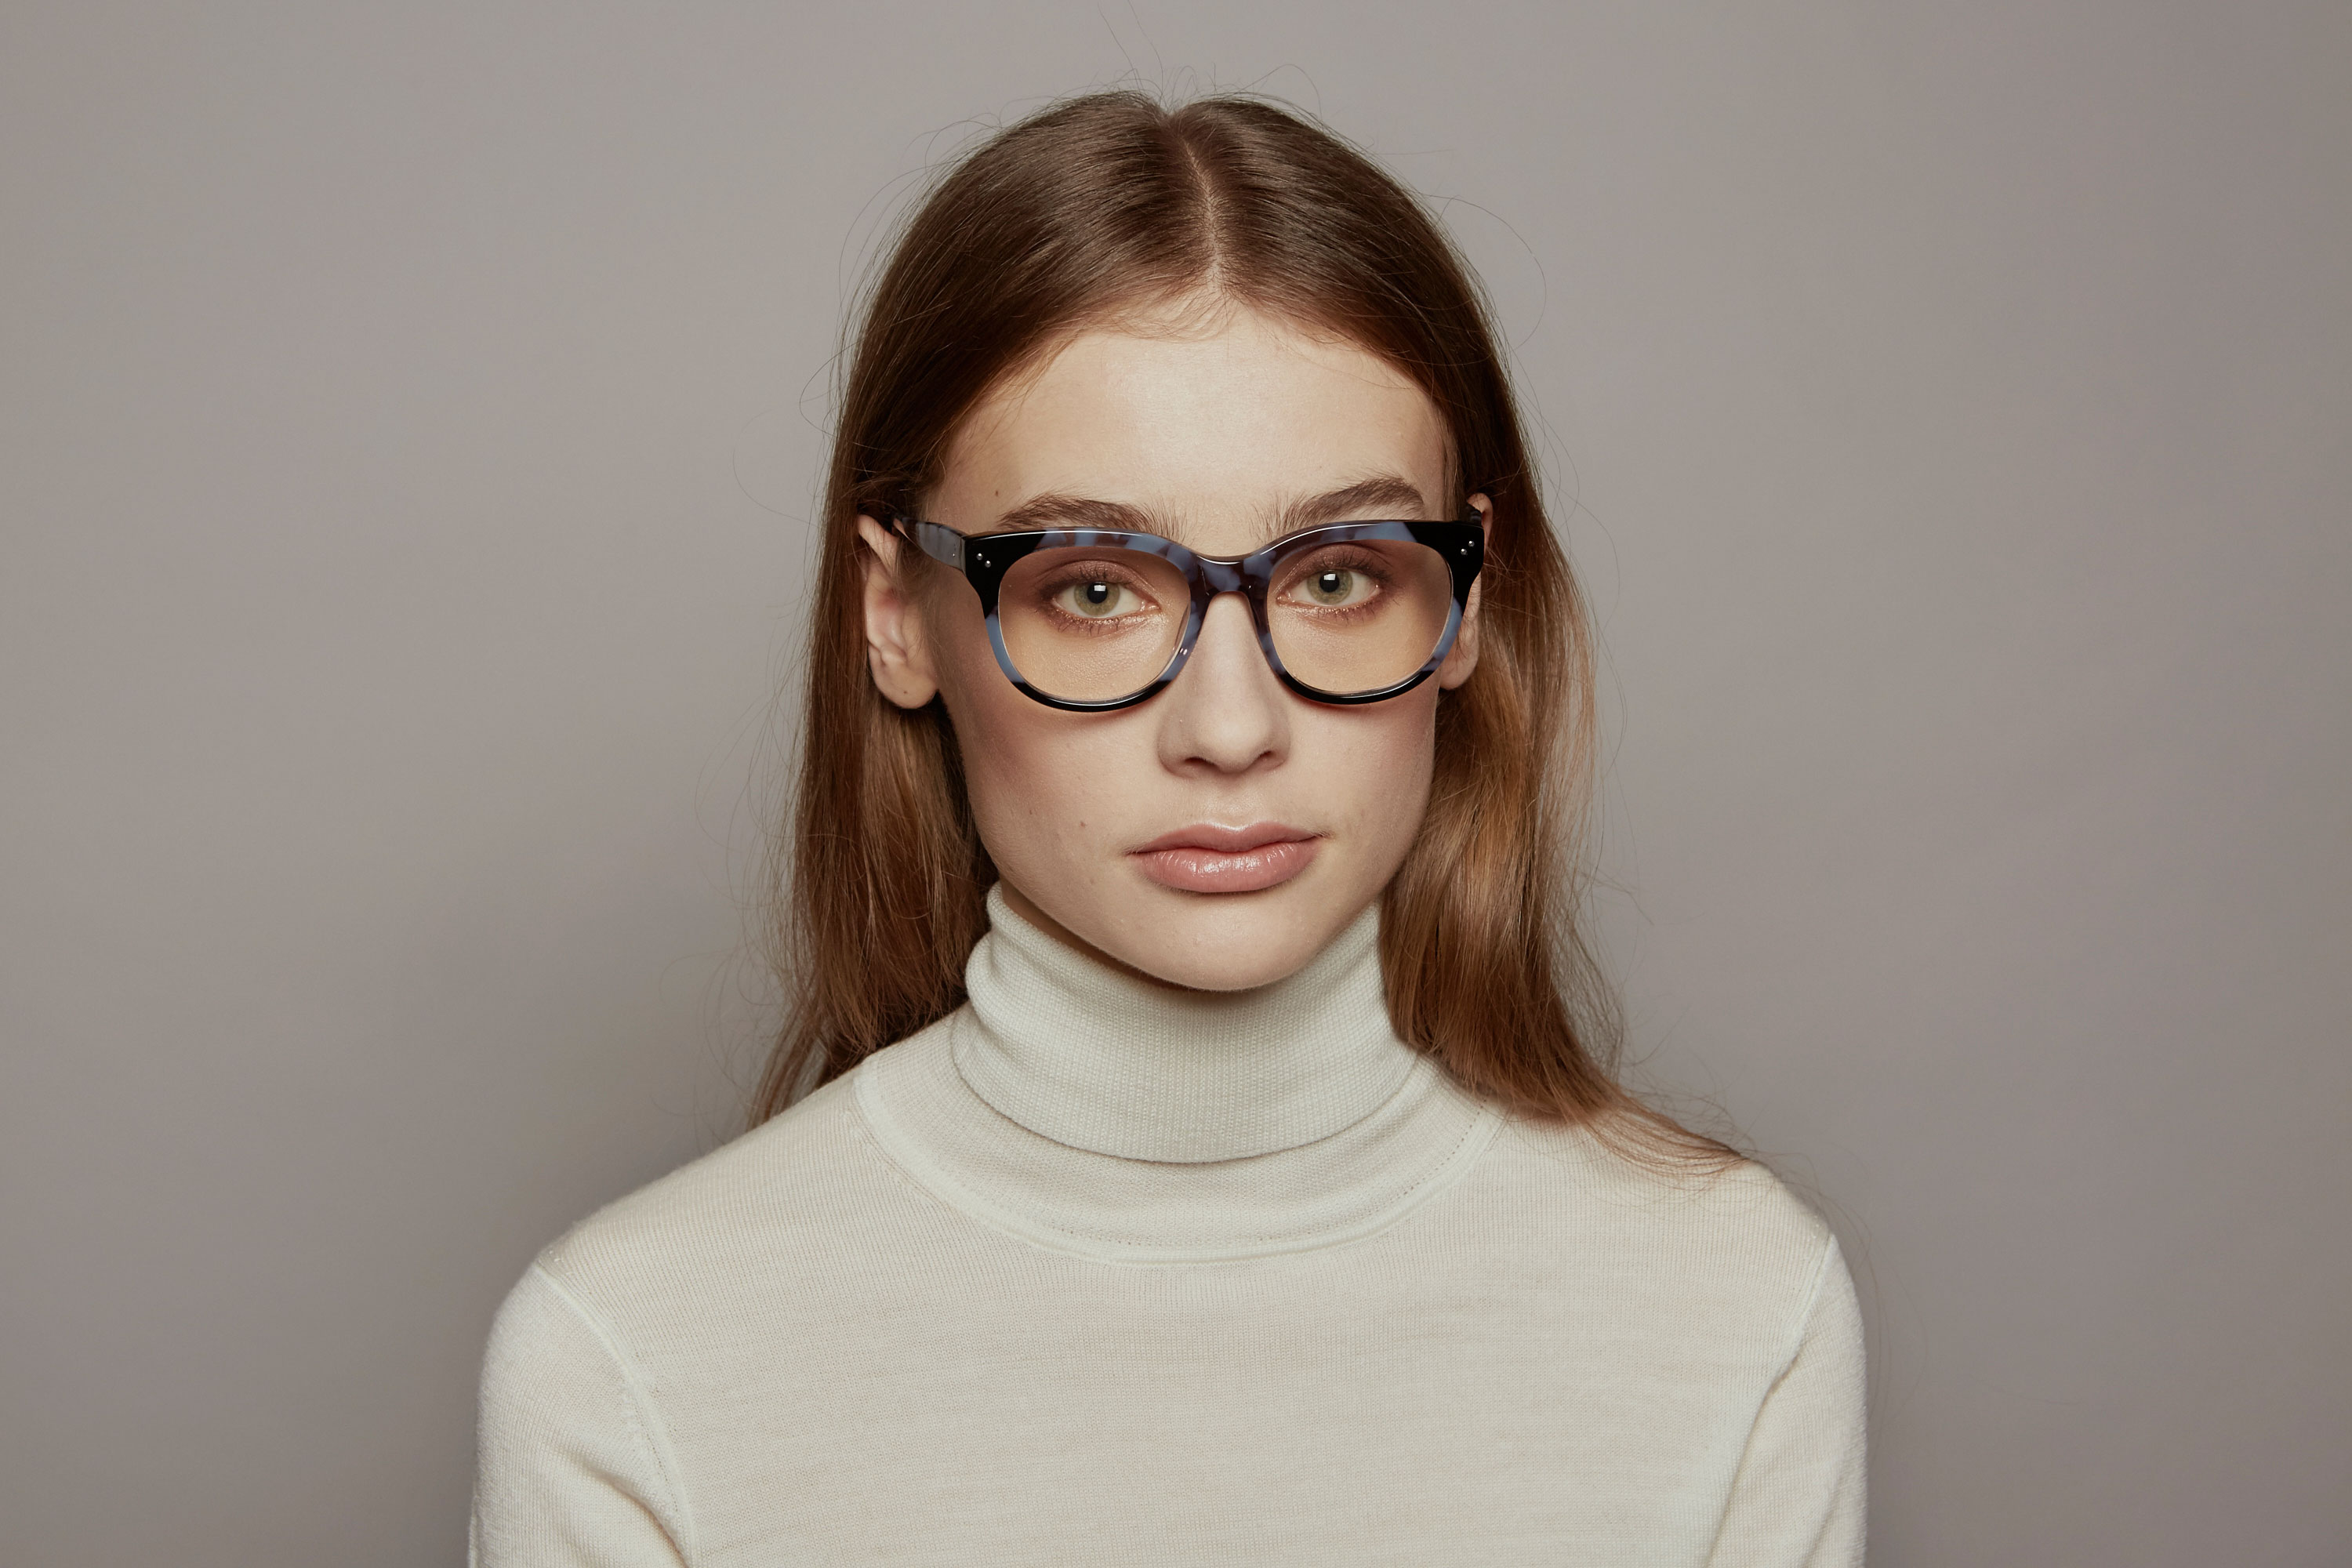 Janis acetate squared grey sunglasses by GIGI Studios